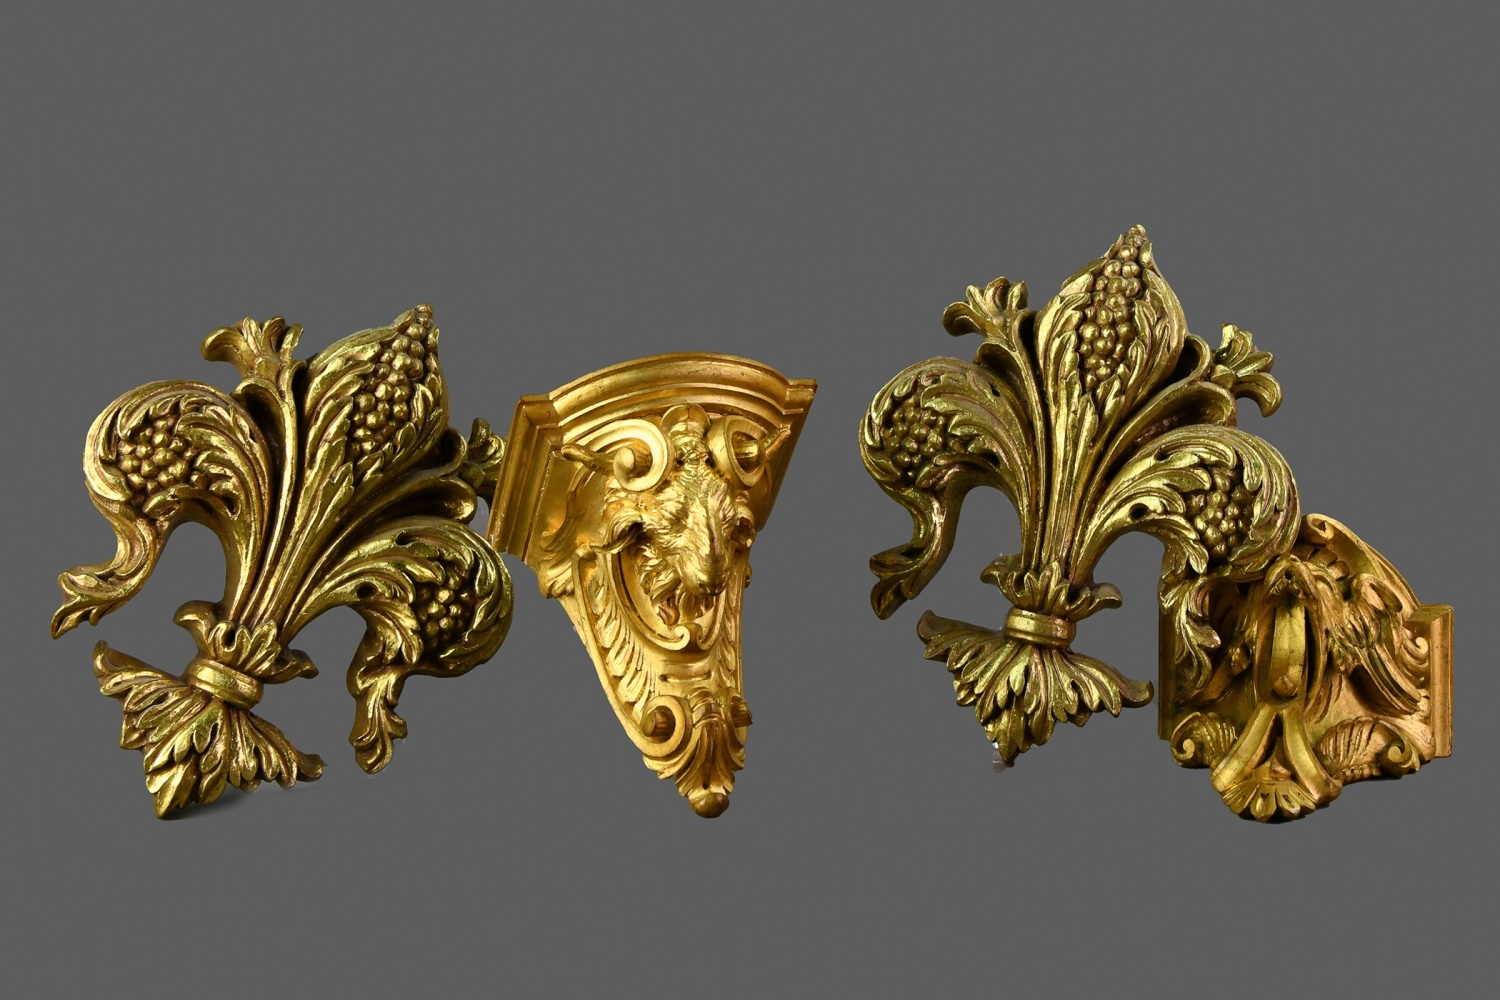 A PAIR OF EARLY 20TH CENTURY GILTWOOD WALL BRACKETS, ALONG WITH A PAIR OF FLEUR-DE-LIS